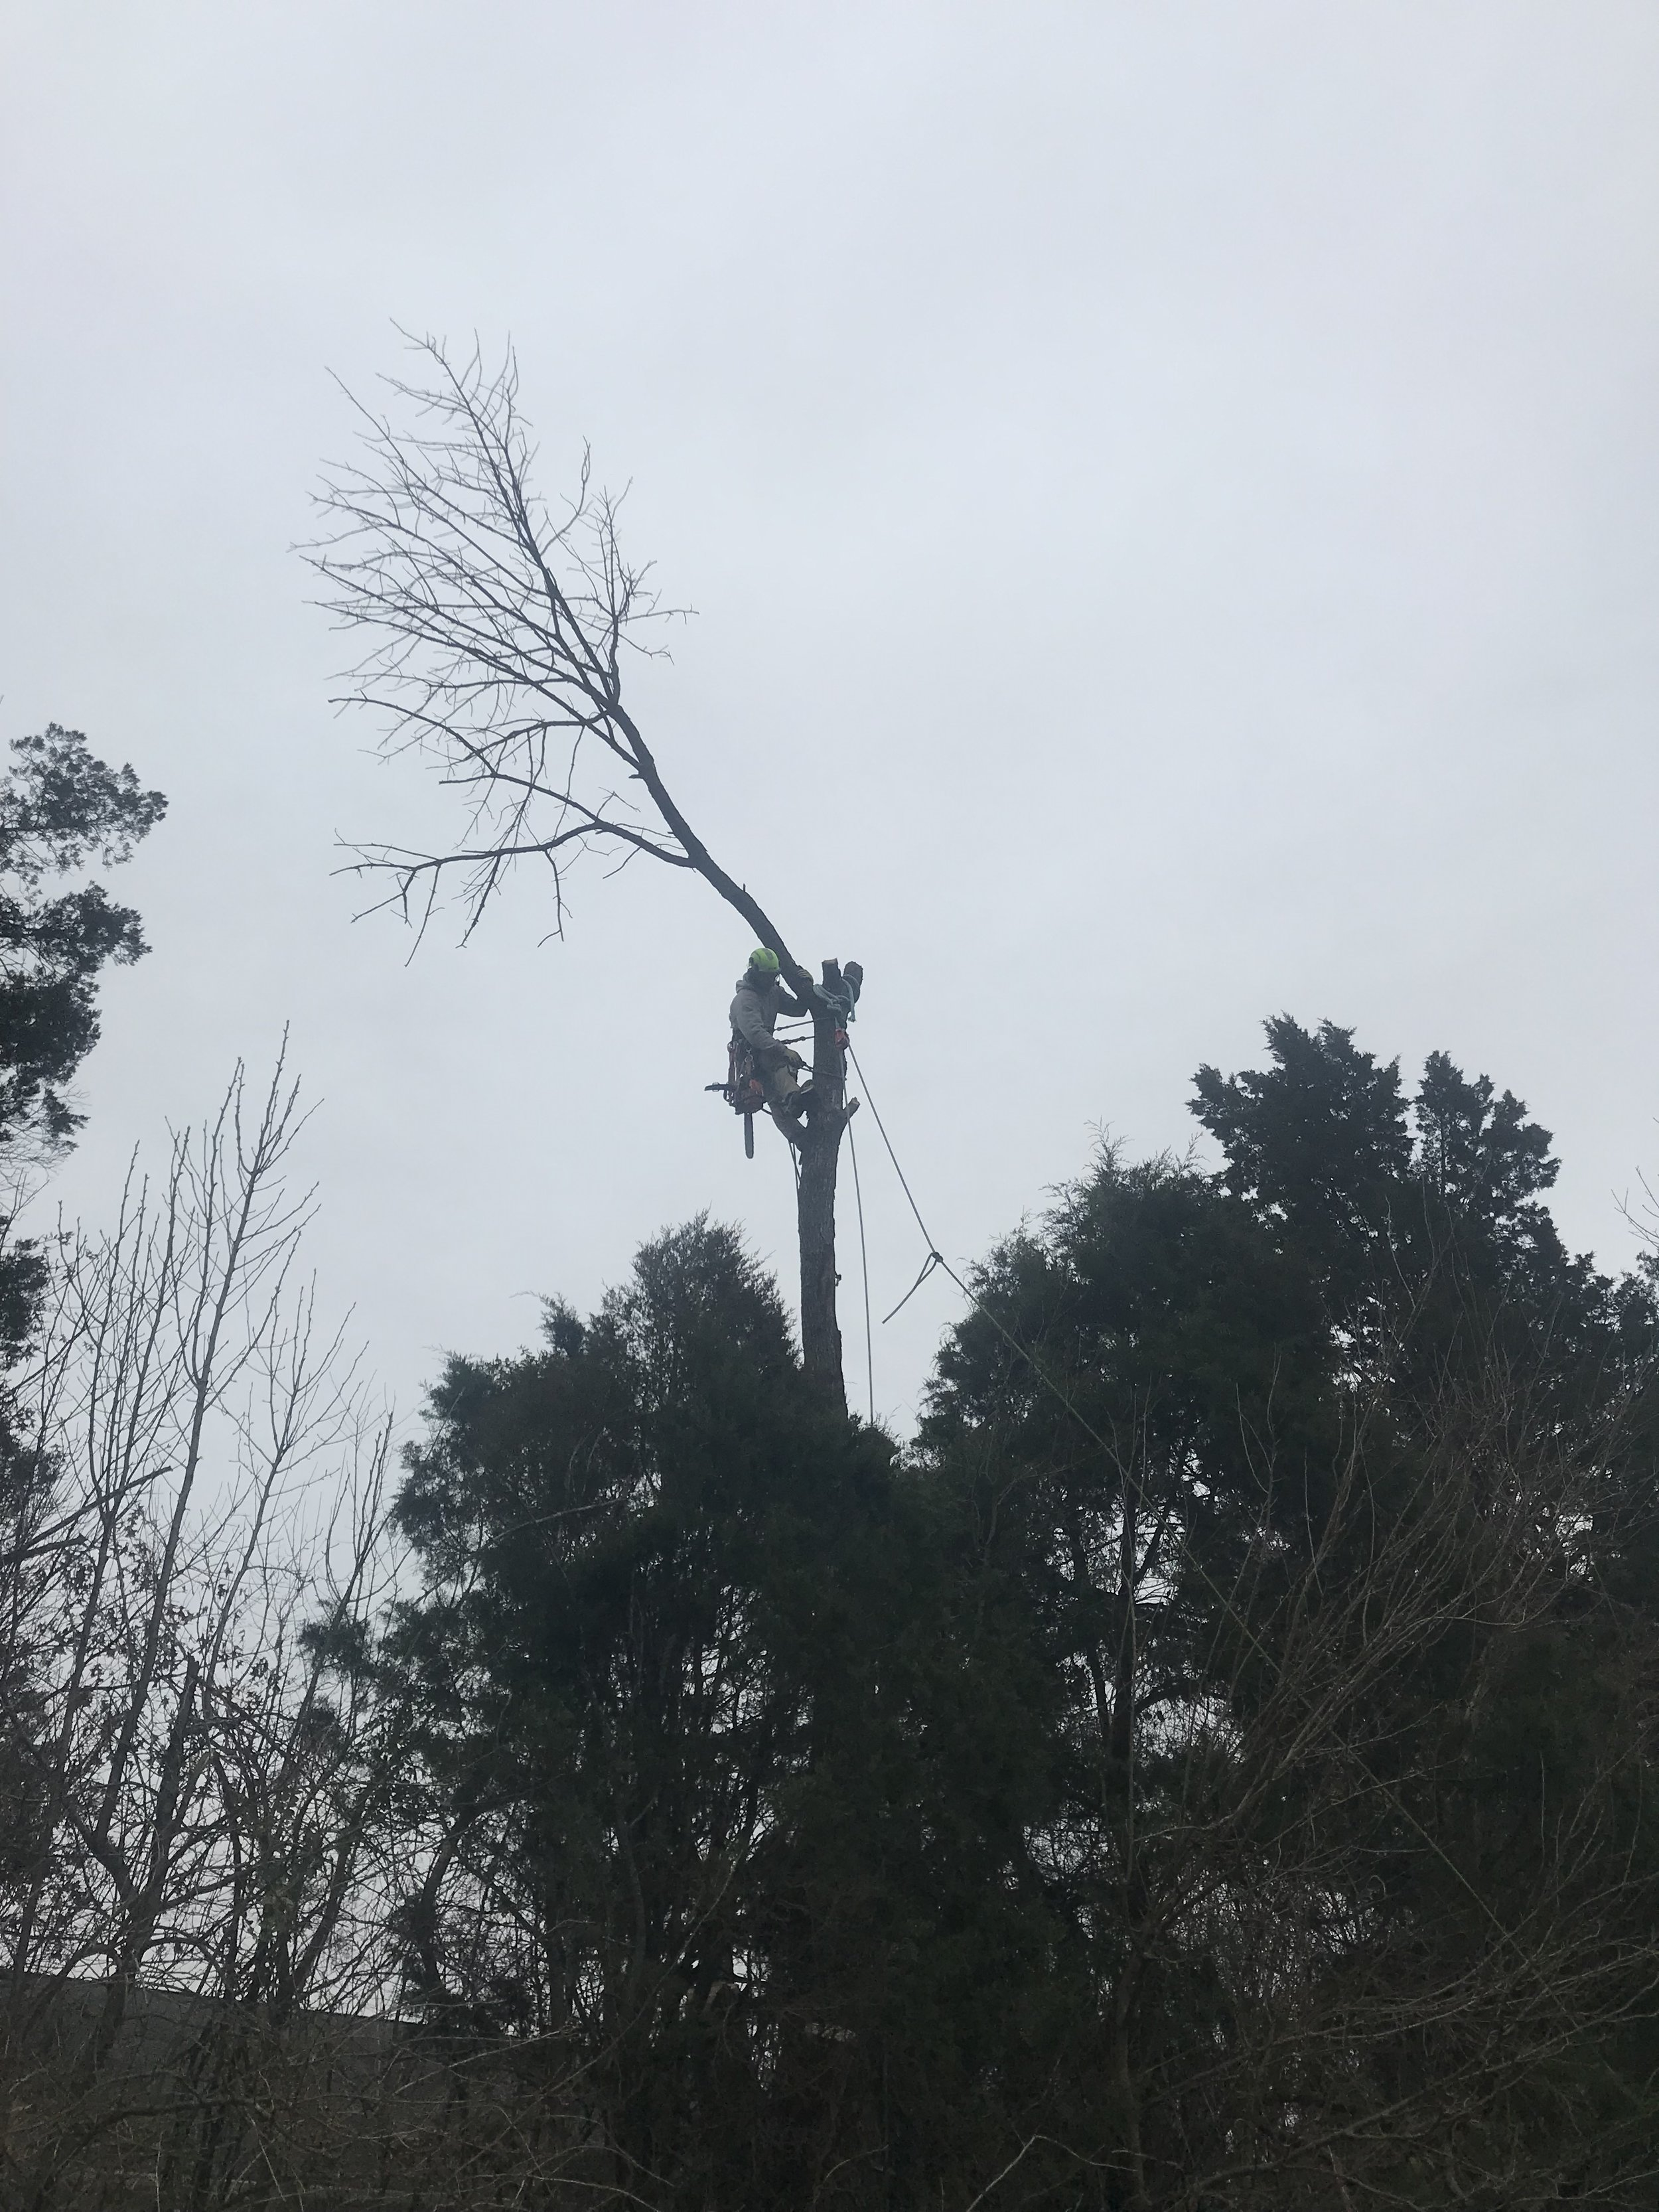 Cut down a large Ash tree in Manassas, VA. The tree was completely dead after being attacked by Emerald Ash Borer. Cut the tree down and removed all debris.